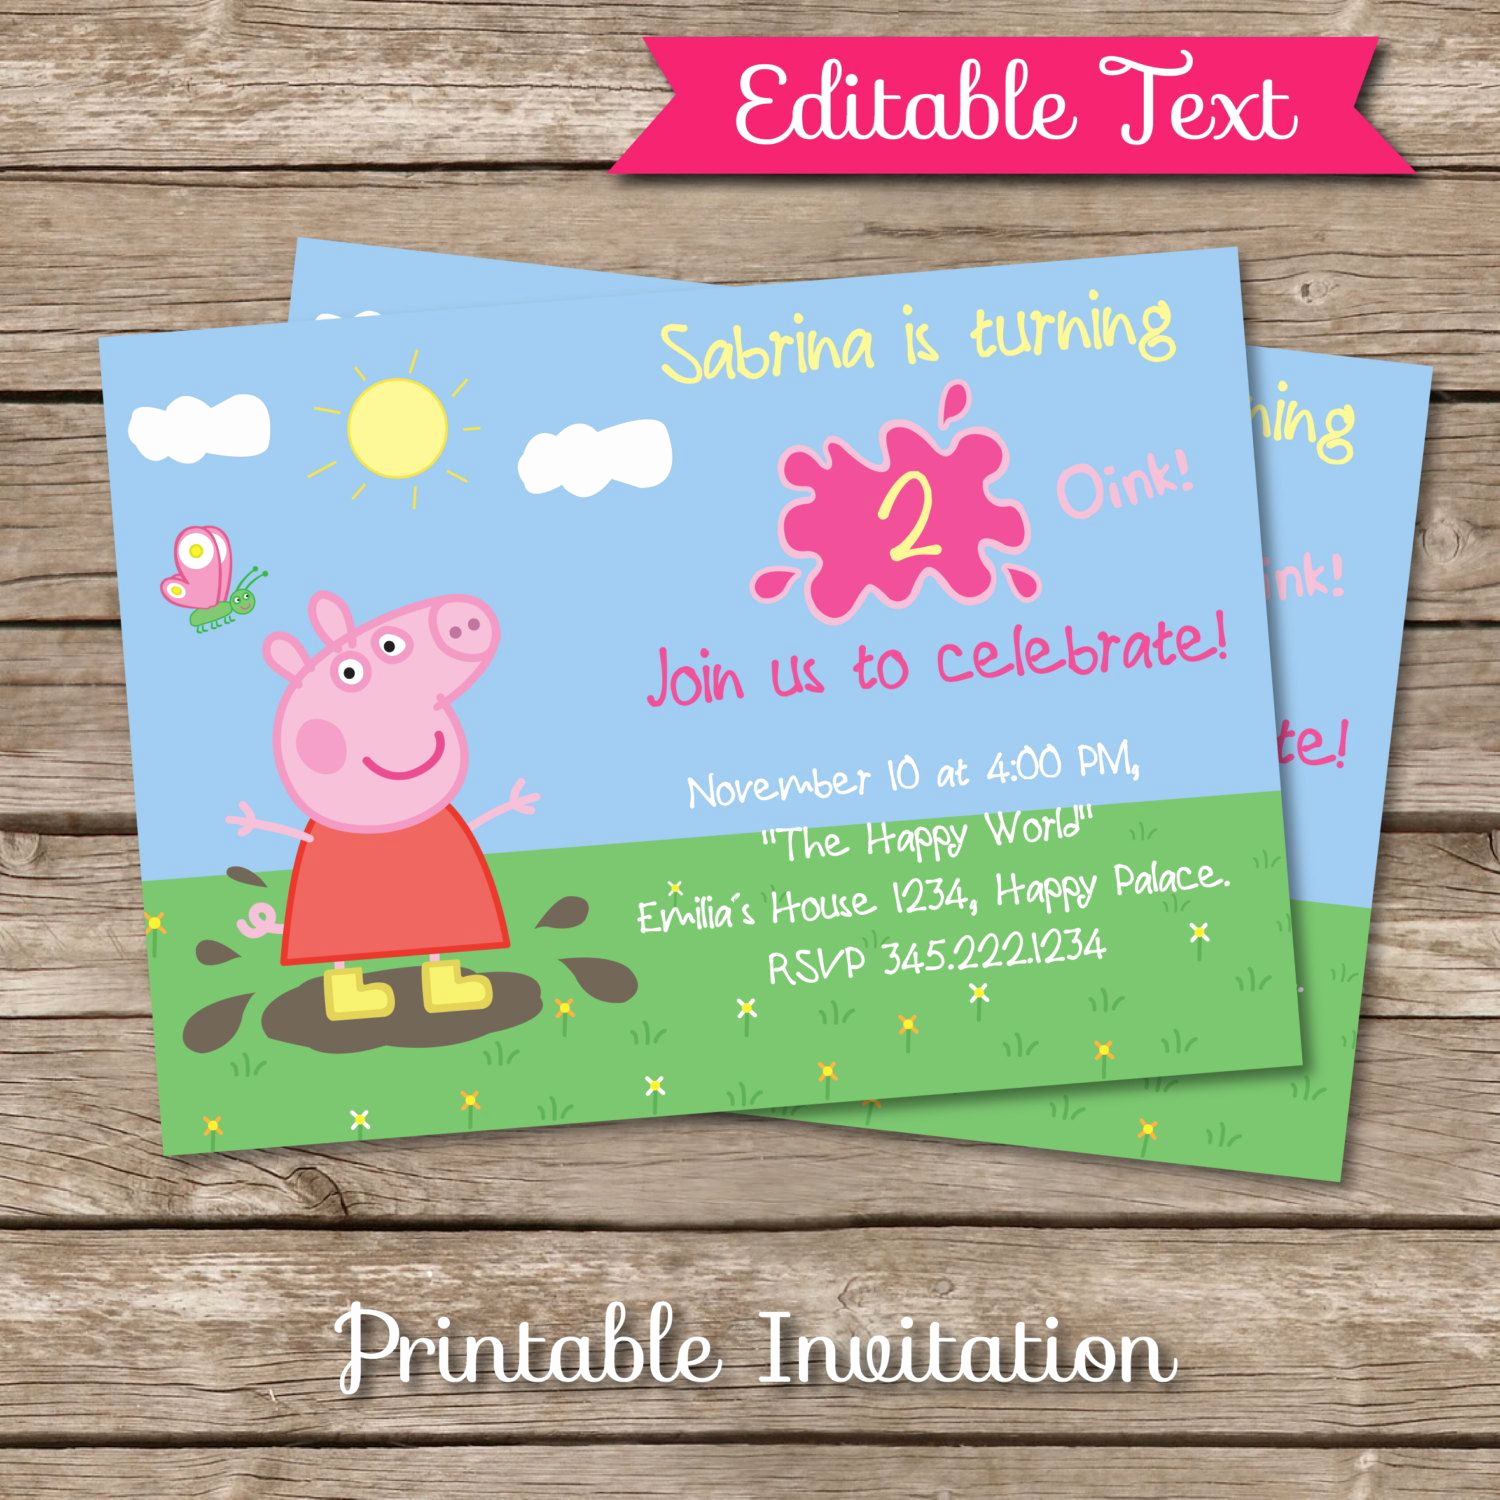 Peppa Pig Invitation Template Free Luxury Peppa Pig Inspired Printable Invitation Editable Text De